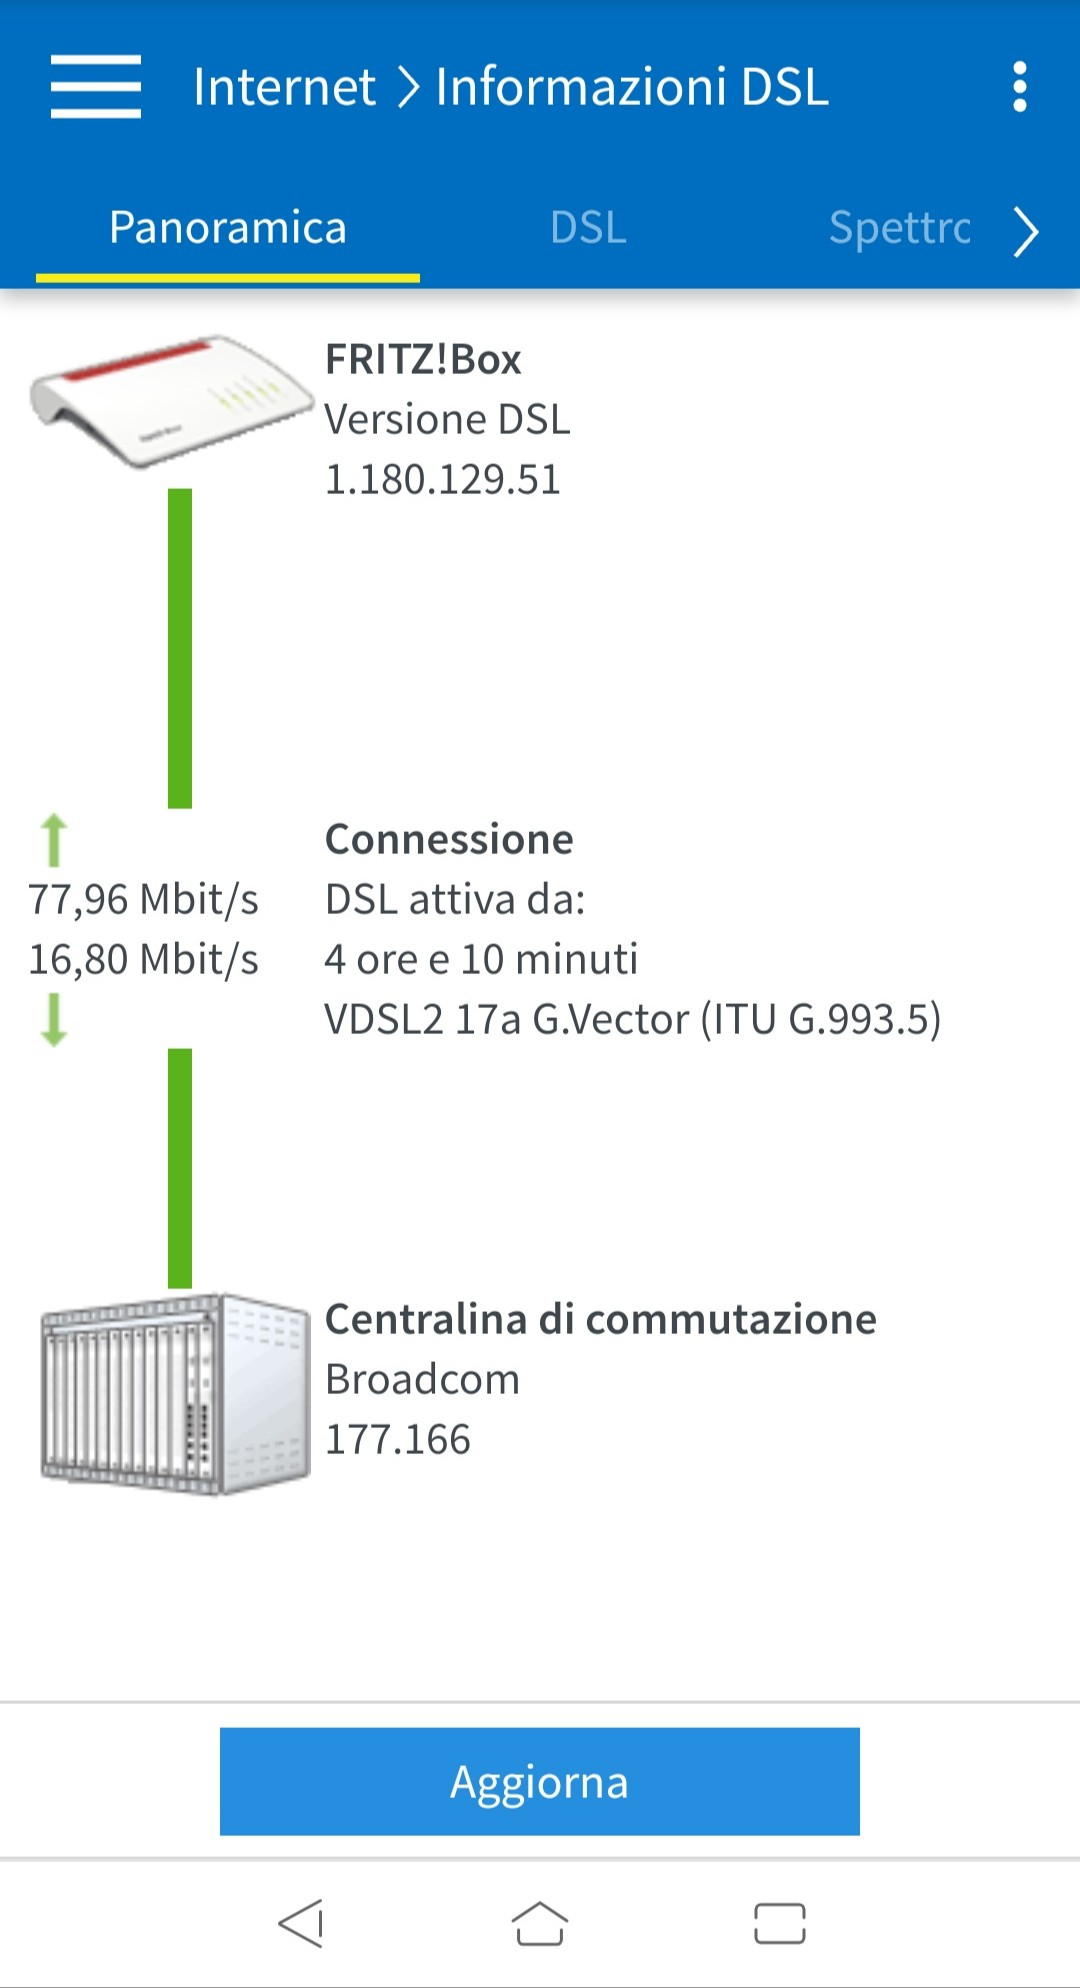 Timeout dell'autenticazione PPP con Tiscali Fttc Screen13